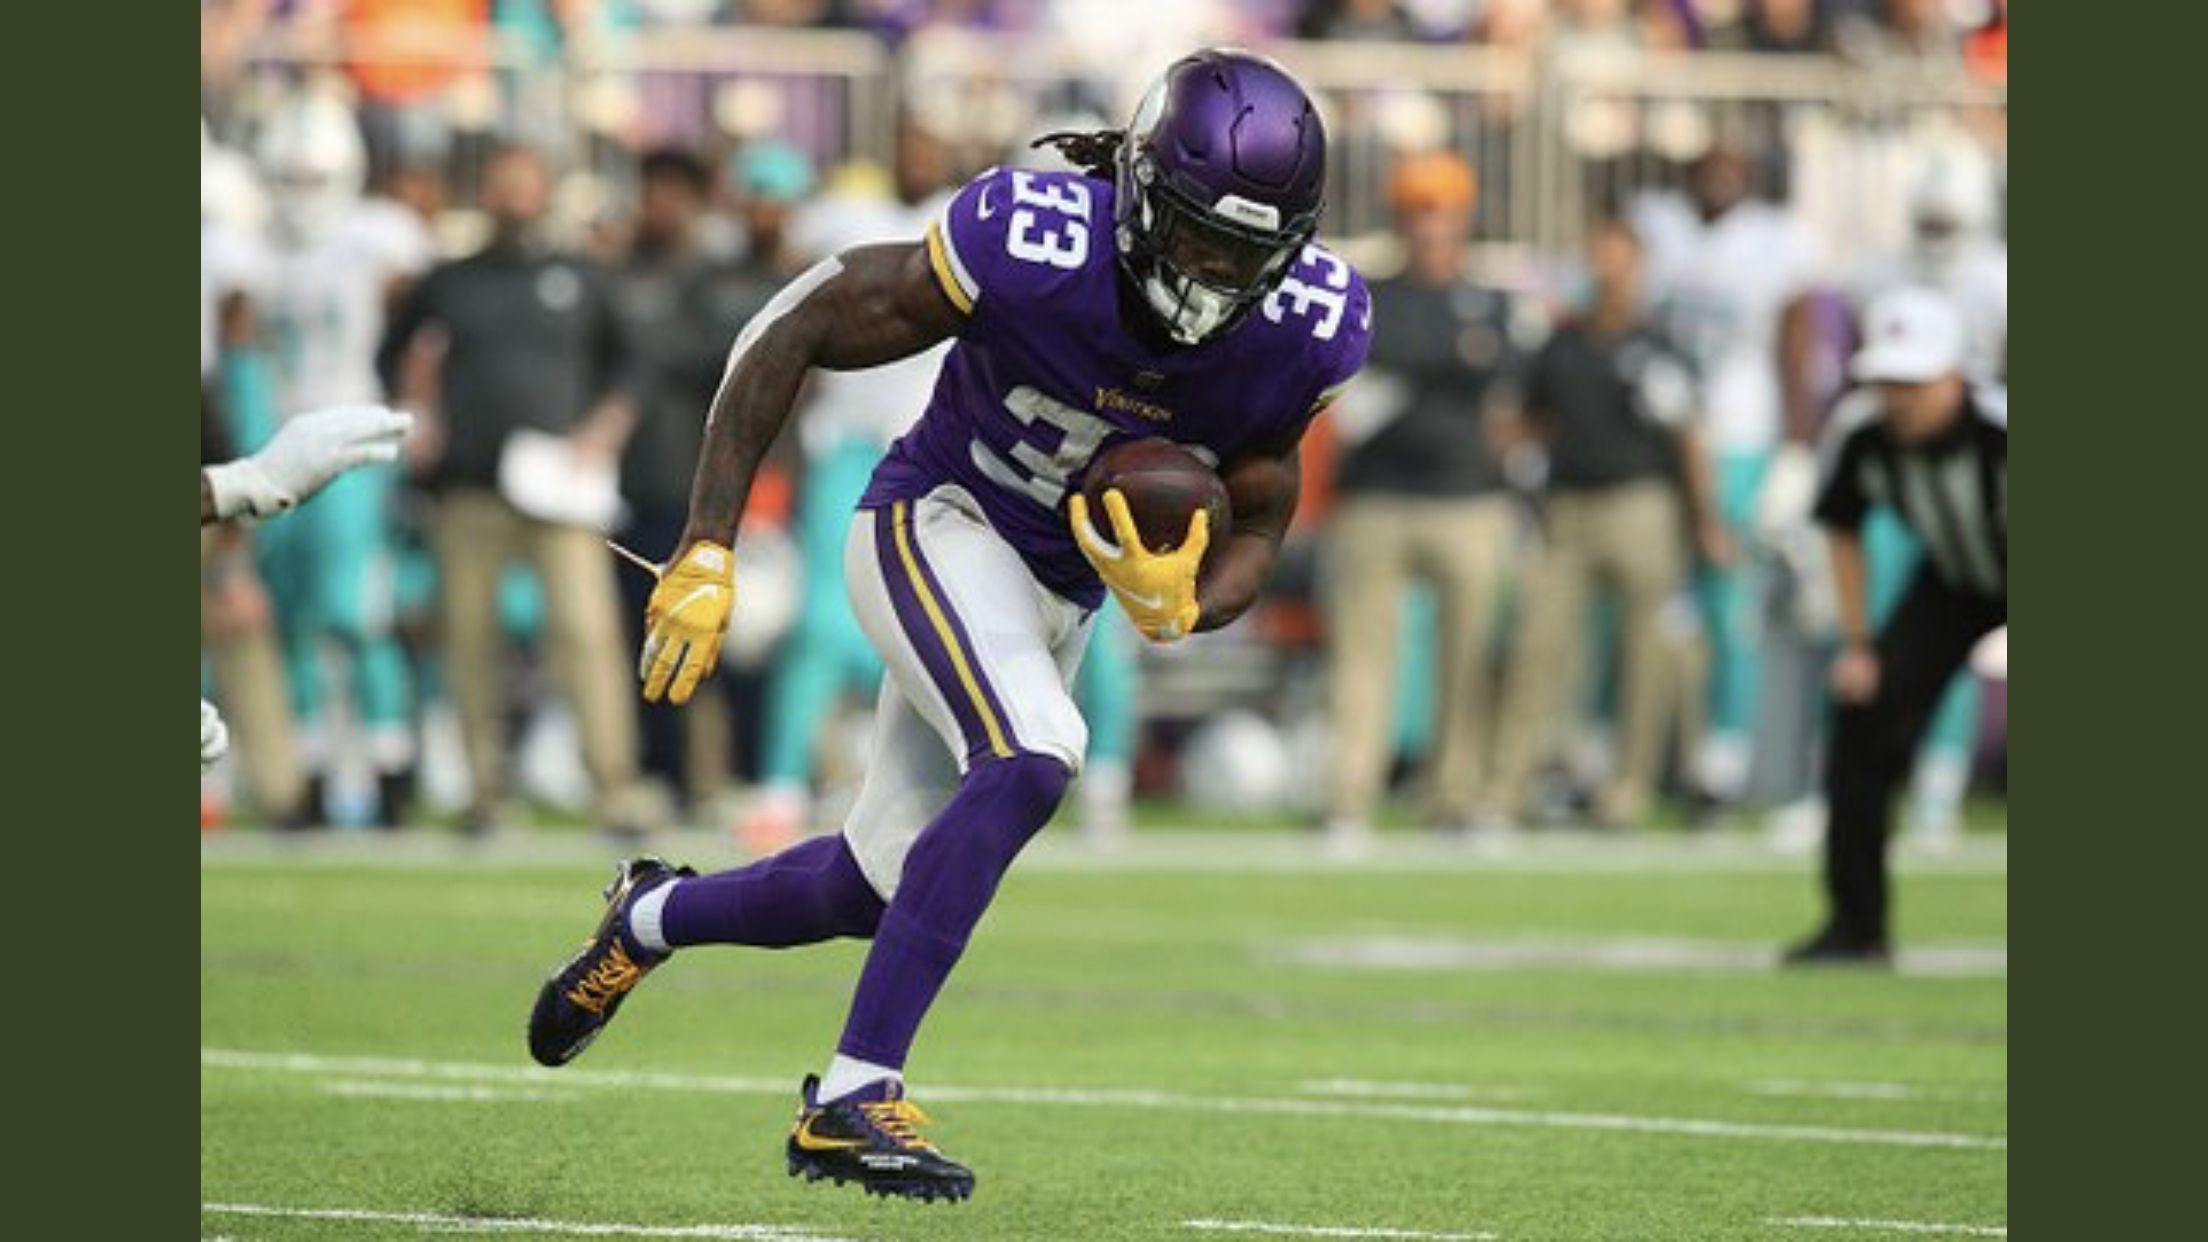 Dalvin Cook is playing great football Football, Live